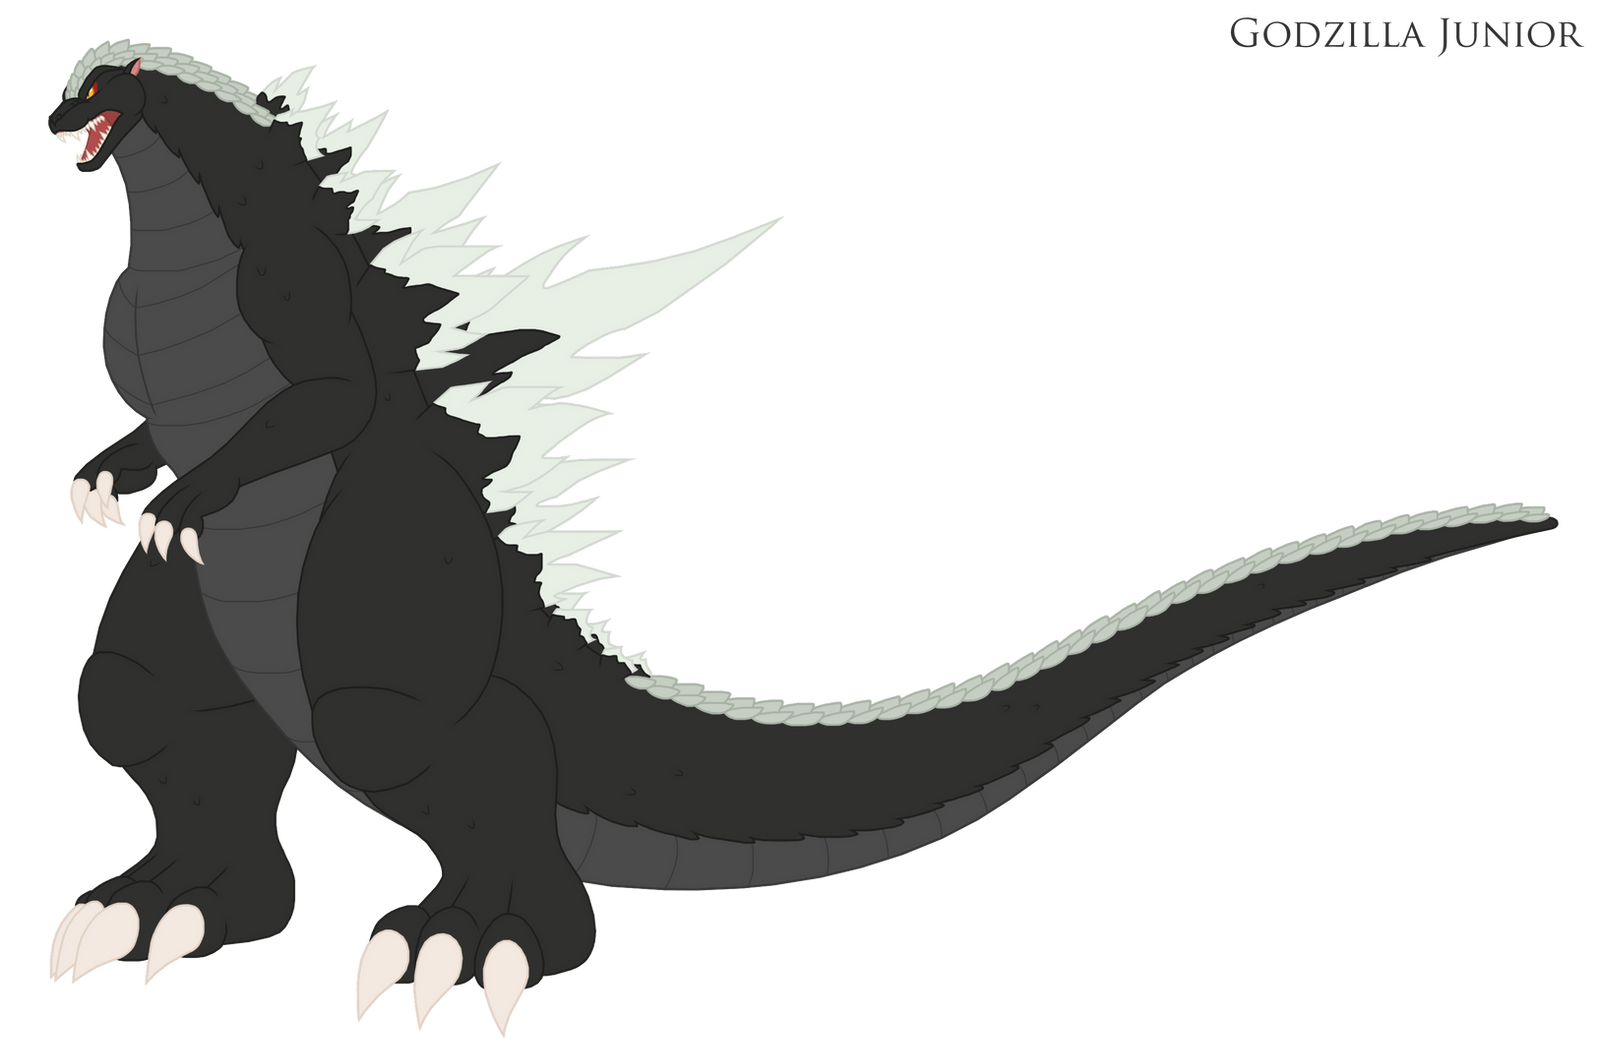 Godzilla Junior Alternate Design By Pyrus Leonidas On